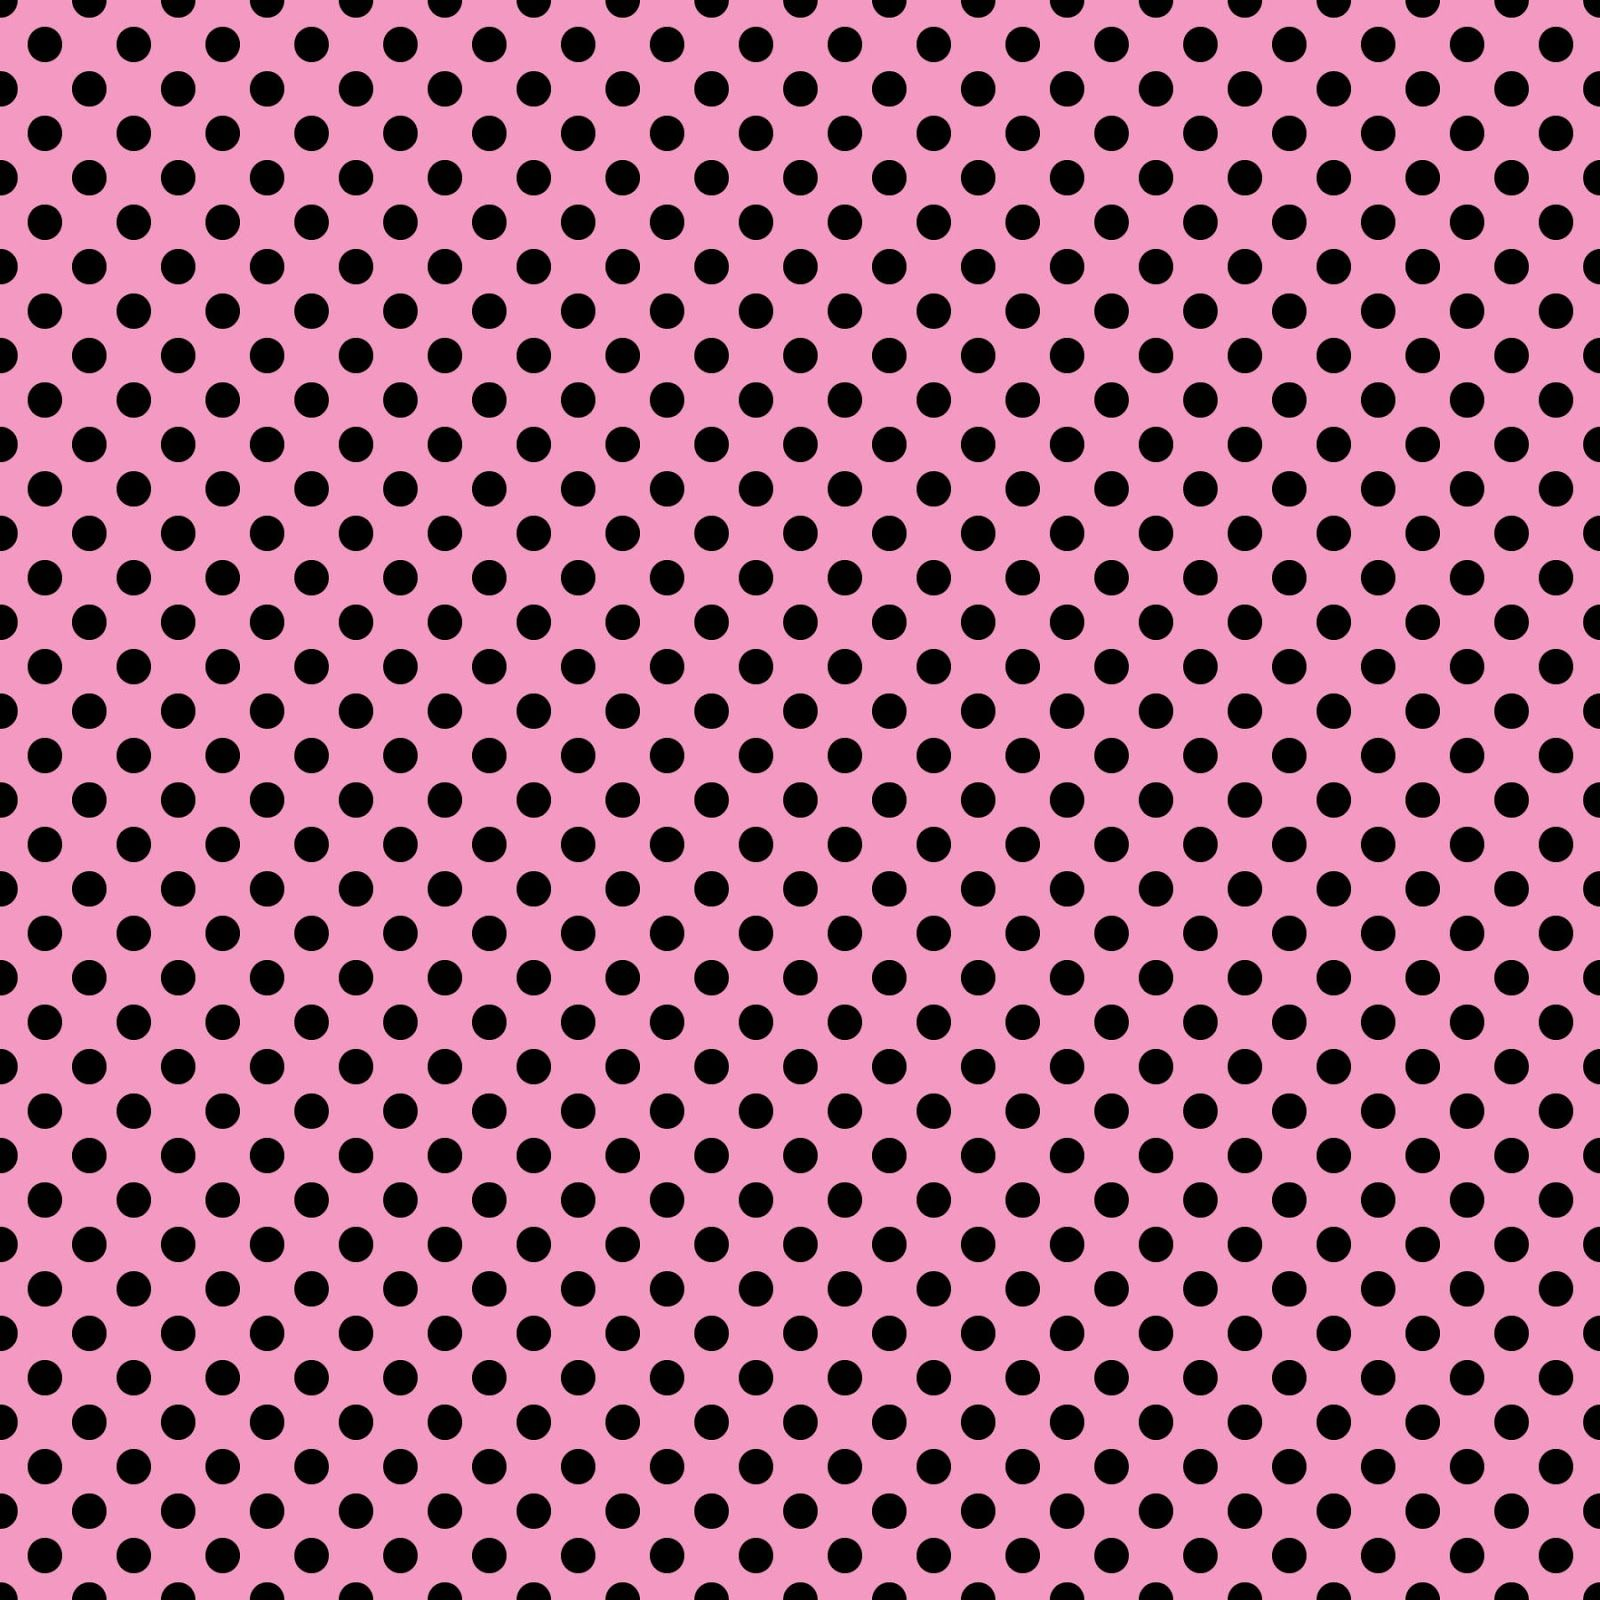 How to make scrapbook paper designs -  Free Vintage Digital Stamps Free Digital Scrapbook Paper Polka Dot